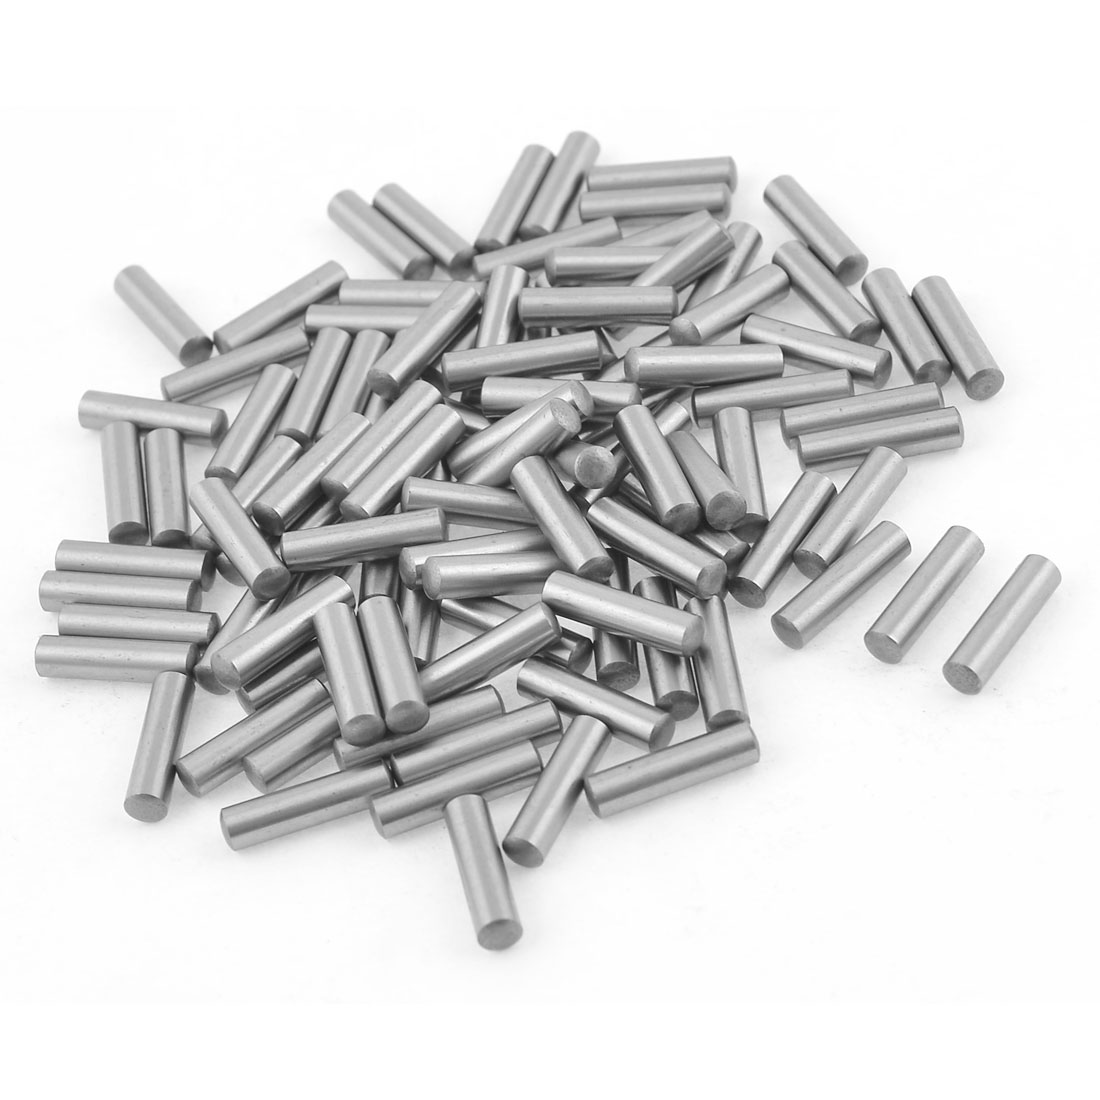 100 Pcs 3.35mm x 15.8mm Parallel Dowel Pins Fasten Elements